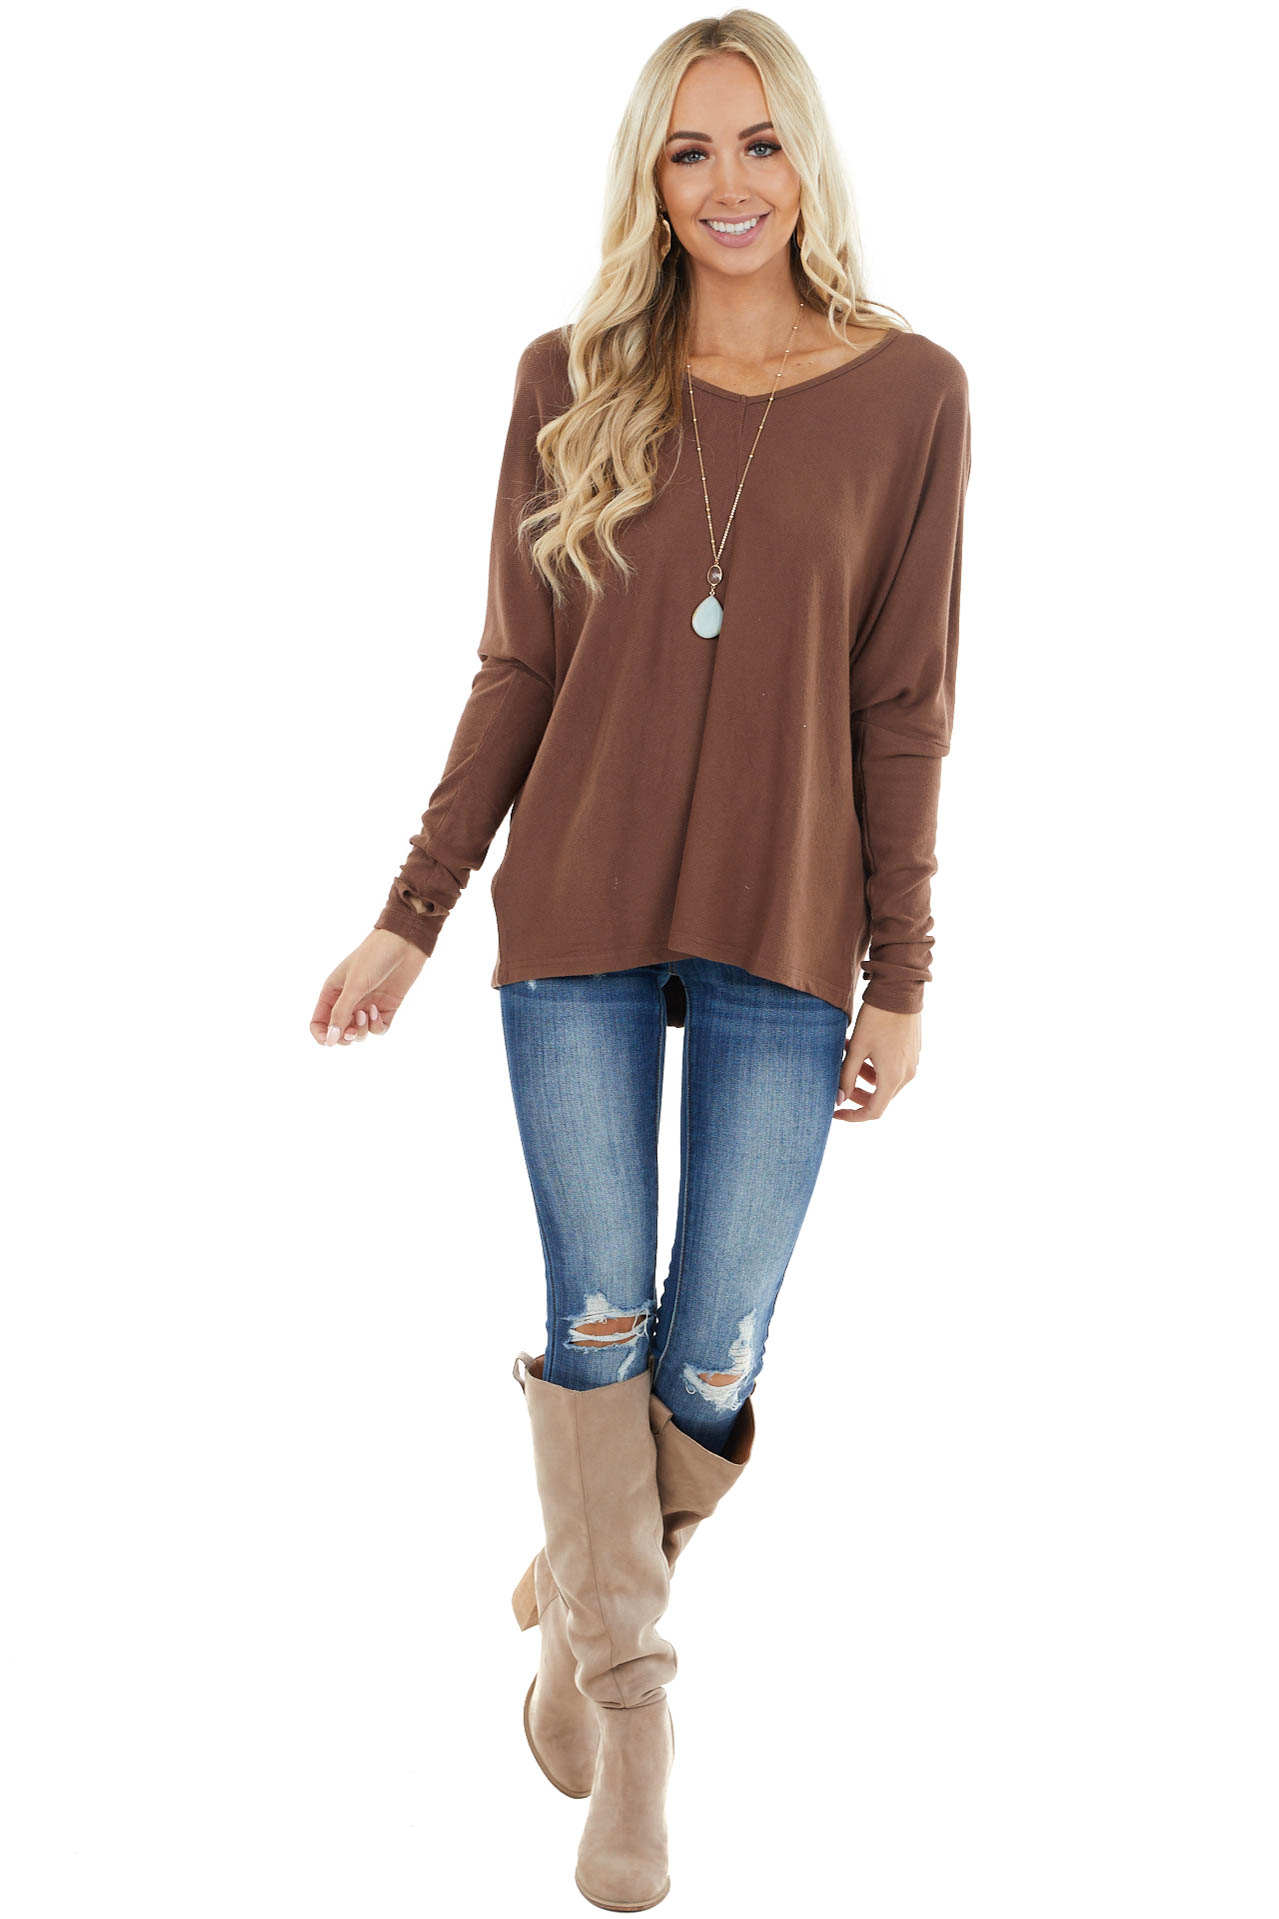 Chocolate Soft Ribbed Knit Top with Long Dolman Sleeves